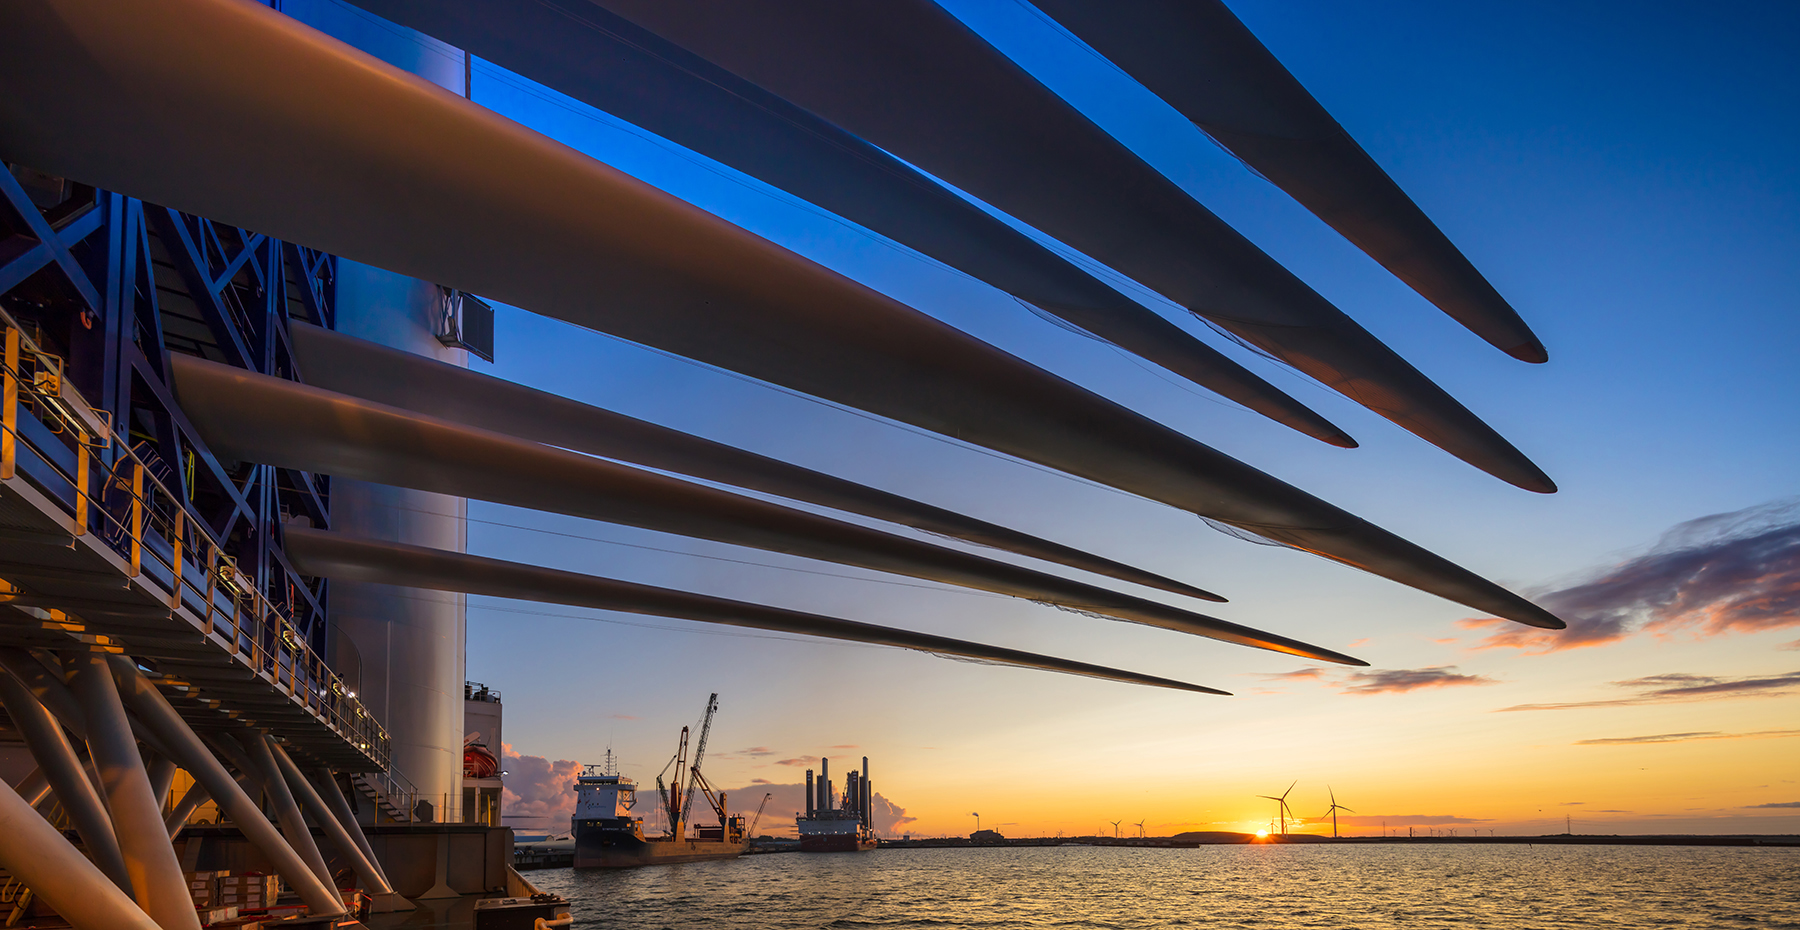 Esbjerg Dawn, Denmark. From the deck of Vole au Vent carrying wind turbine blades for Blyth.